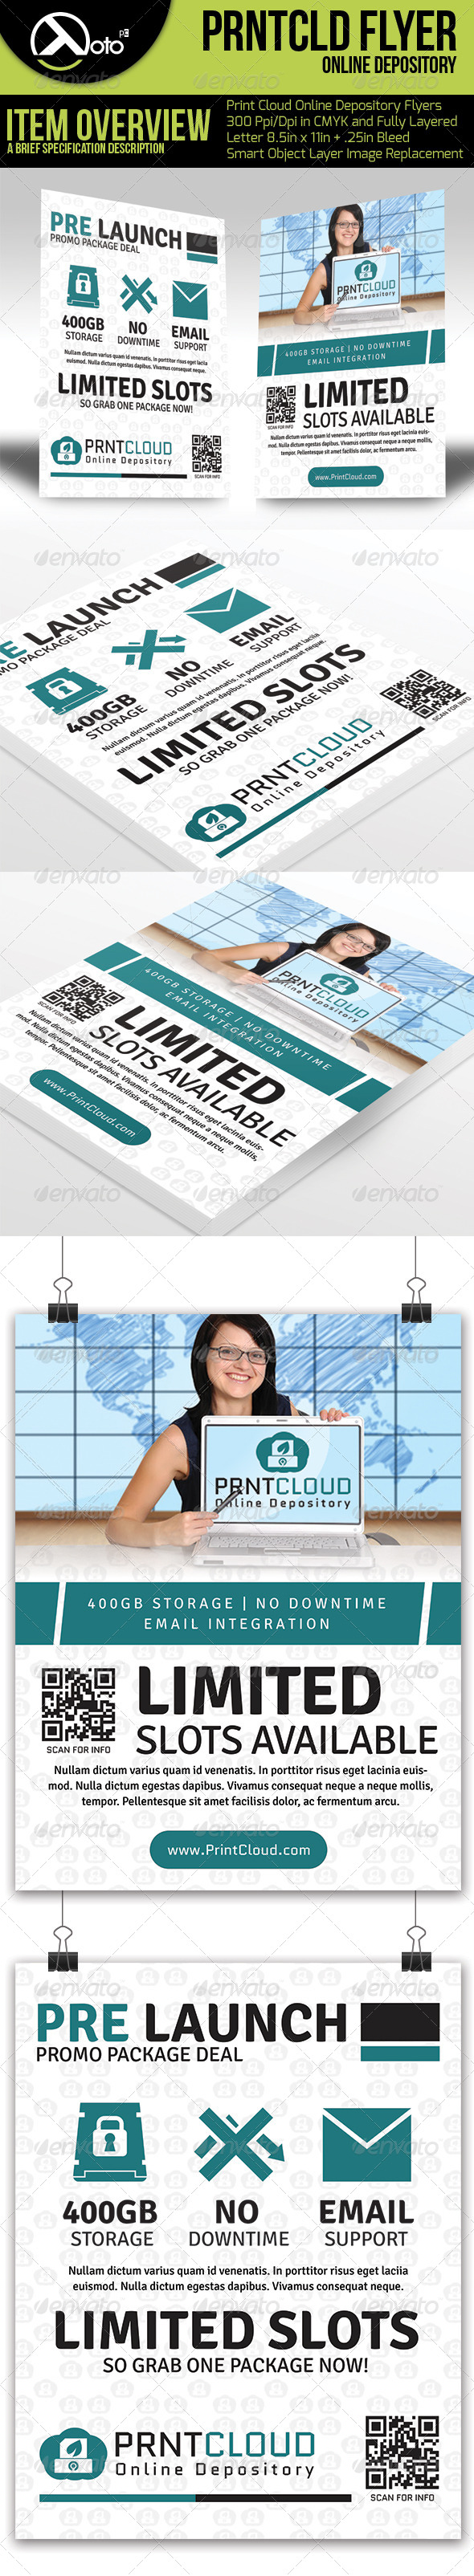 Print Cloud Online Depository Flyers - Flyers Print Templates